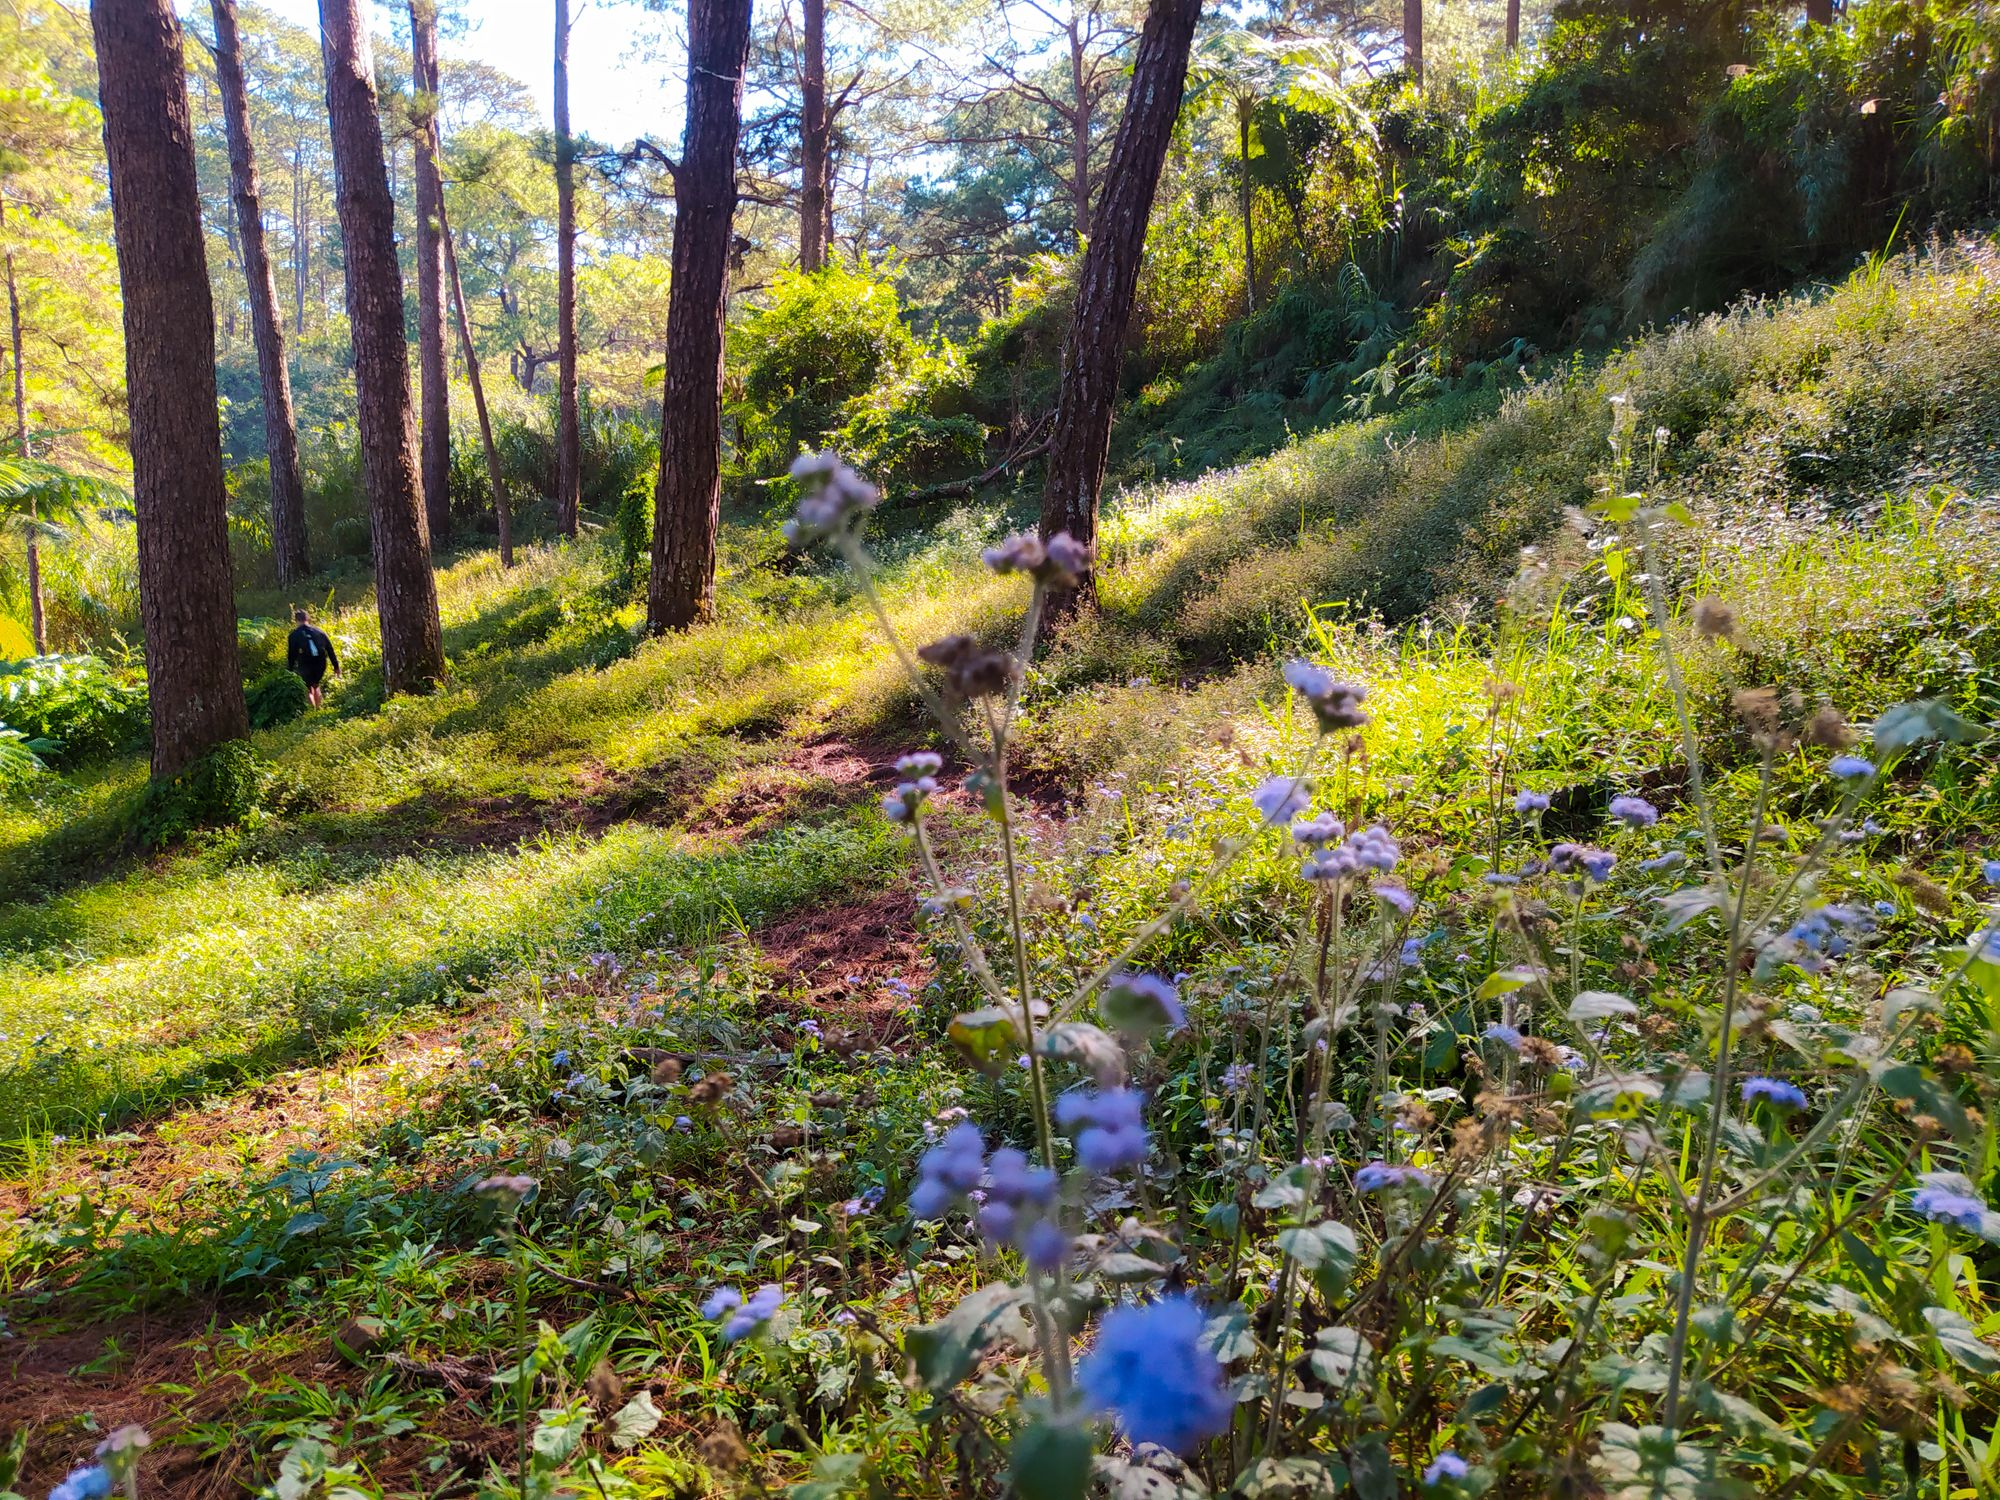 Blue wild flowers on a verdant slope clad with grass and pine trees